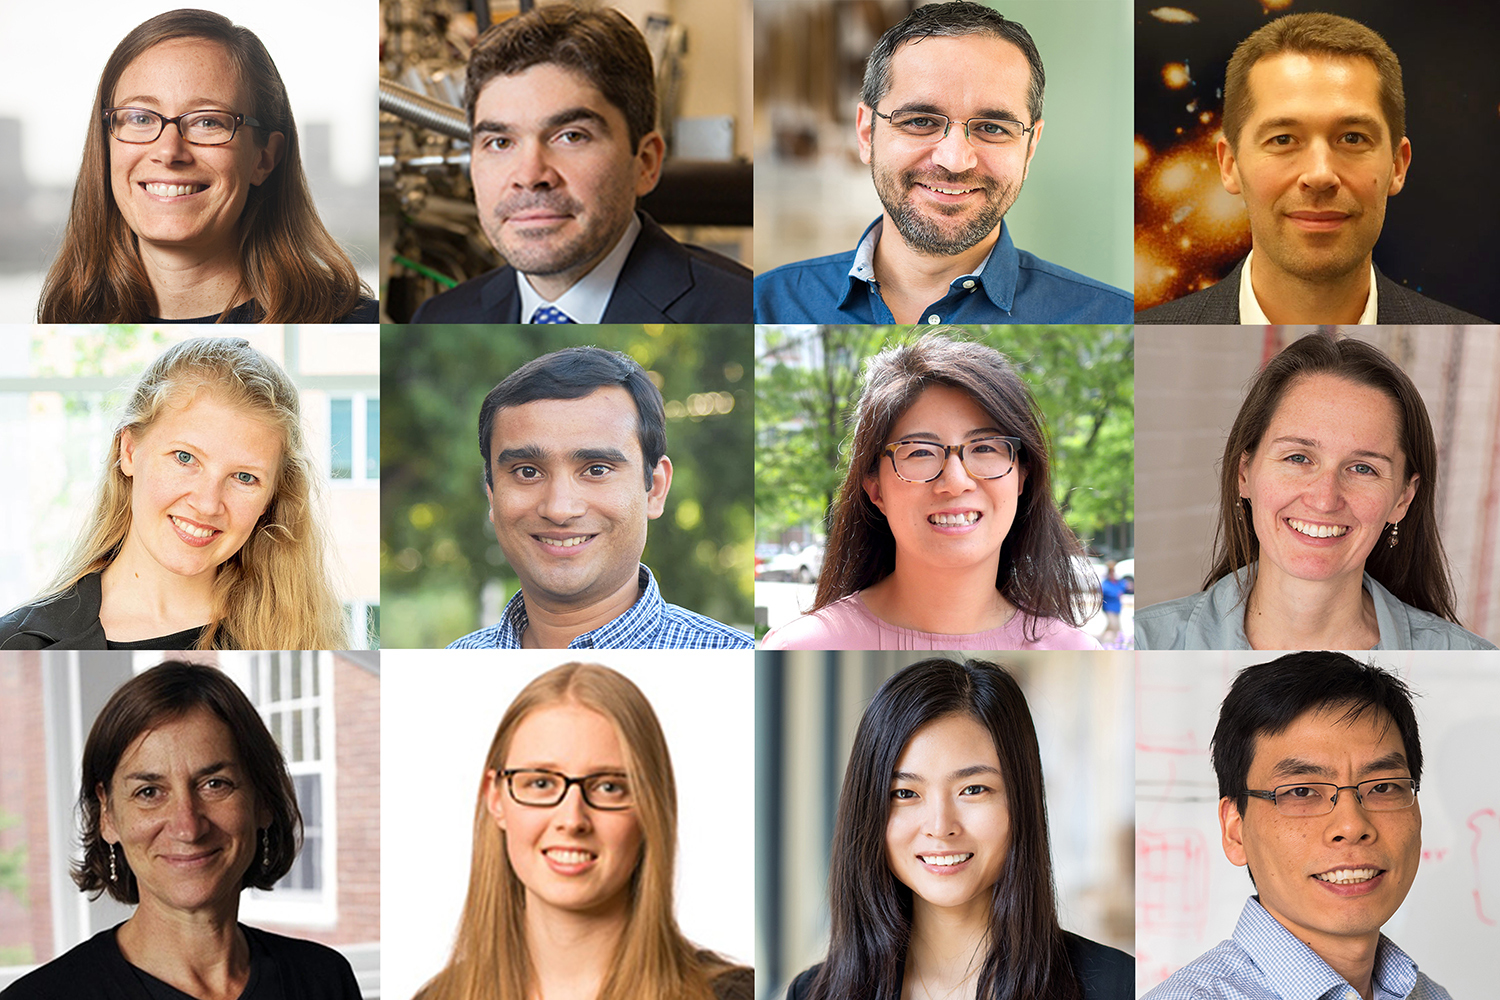 School of Science appoints 12 faculty members to named professorships